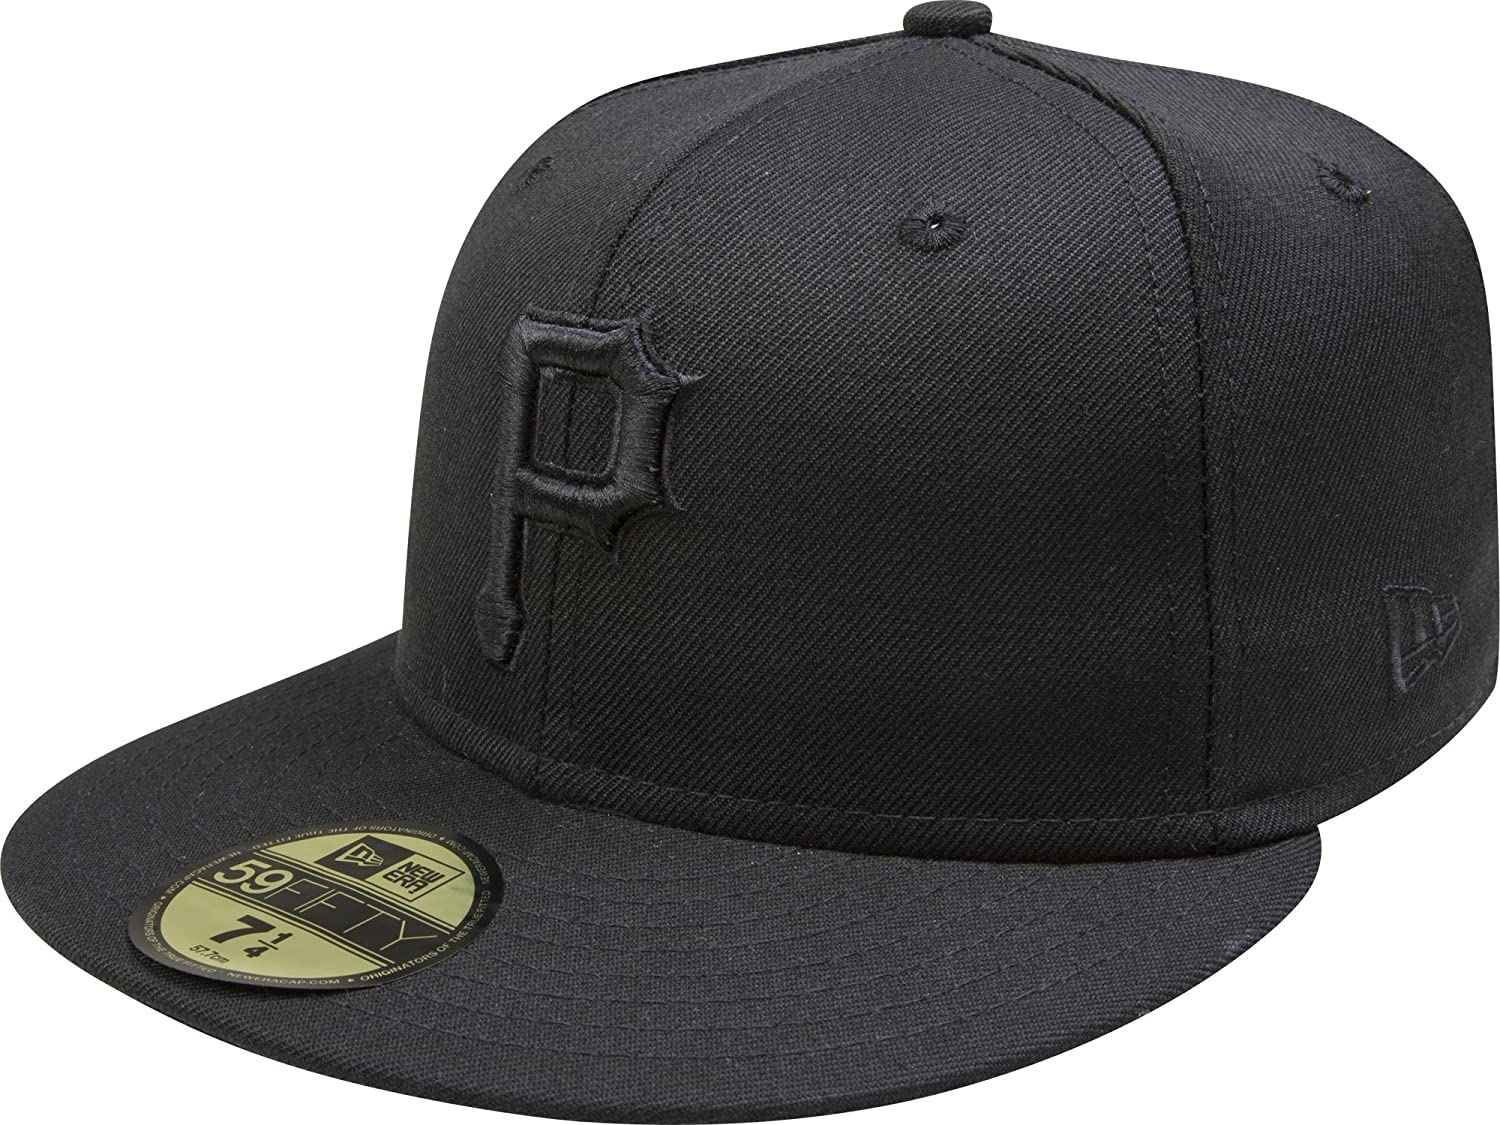 detailed look 6aa08 81fb4 Amazon.com   New Era 59Fifty Pittsburgh Pirates Blackout Fitted Hat (Black  Black) Men s Cap   Clothing